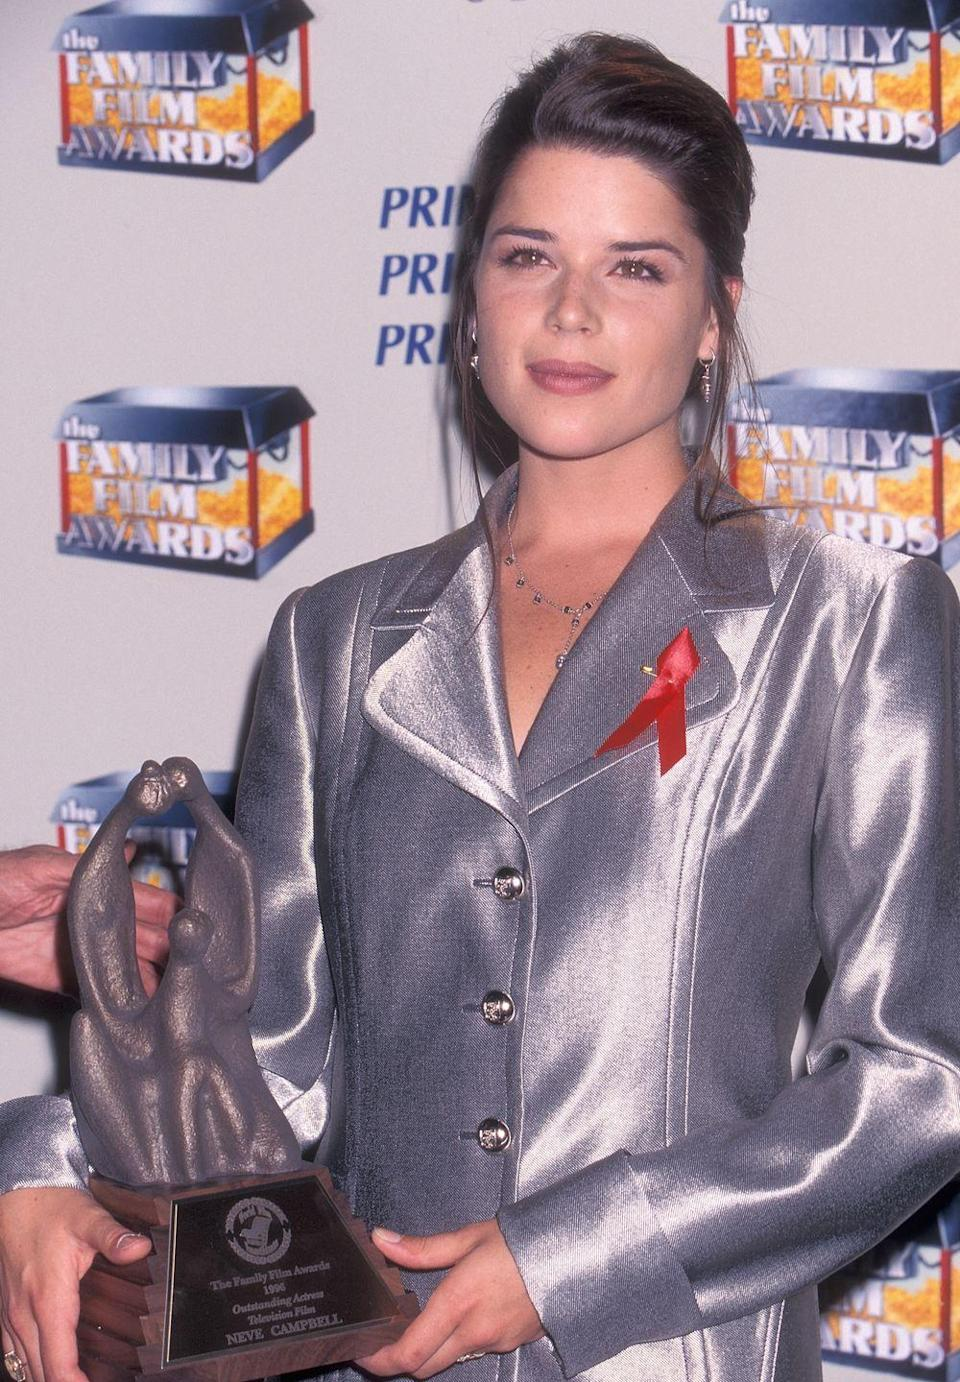 <p>Neve Campbell's career was at an all-time high in the '90s, and it started off with her role as Julia Salinger in <em>Party of Five</em>. From there, she had notably successful roles in films like <em>The Craft</em> and <em>Scream</em>.</p>